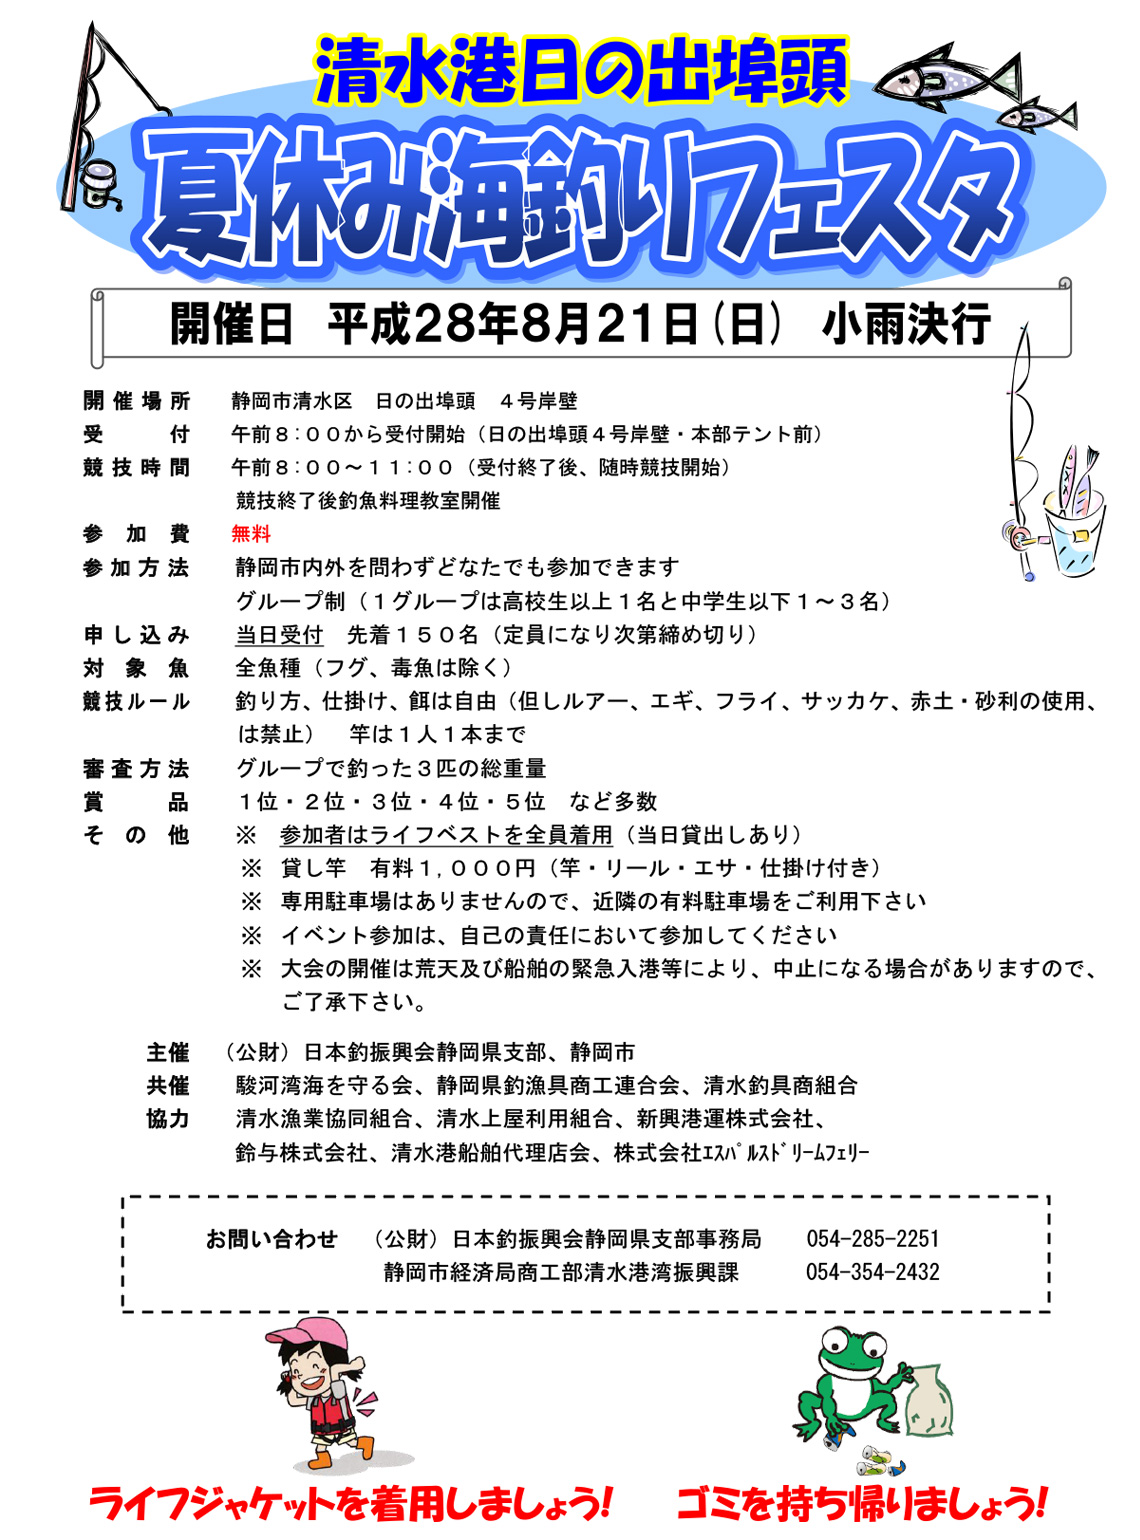 <a href=&quot;http://fishing-you.com/event/160821niccyoushin&quot;>夏休み海釣りフェスタ</a>